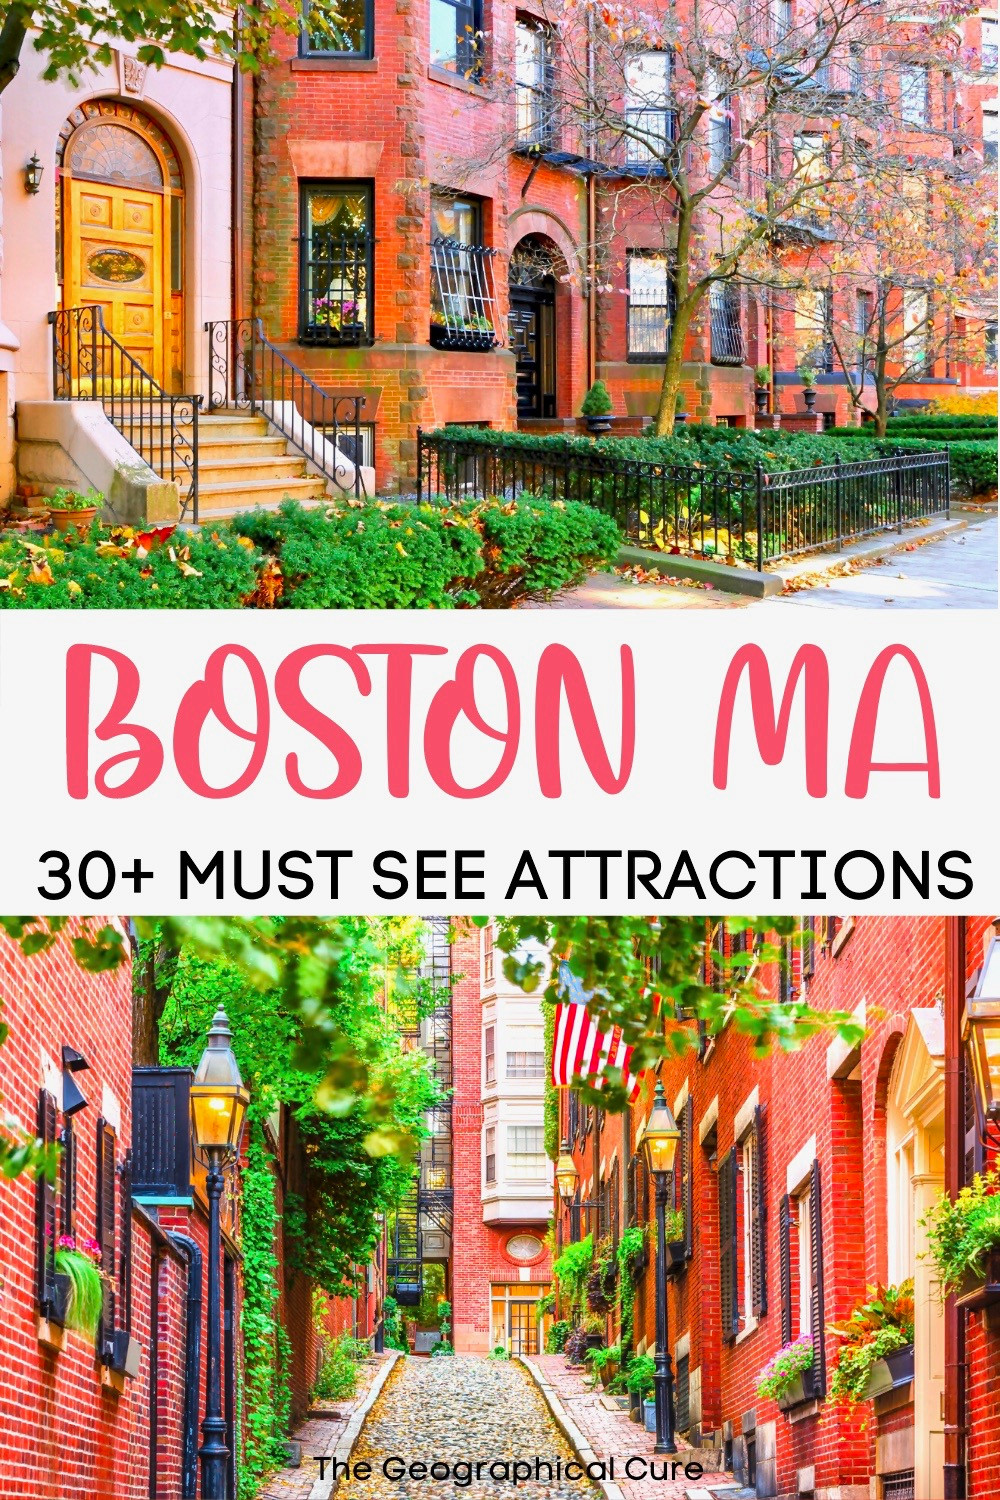 guide to amazing landmarks and attractions in Boston MA